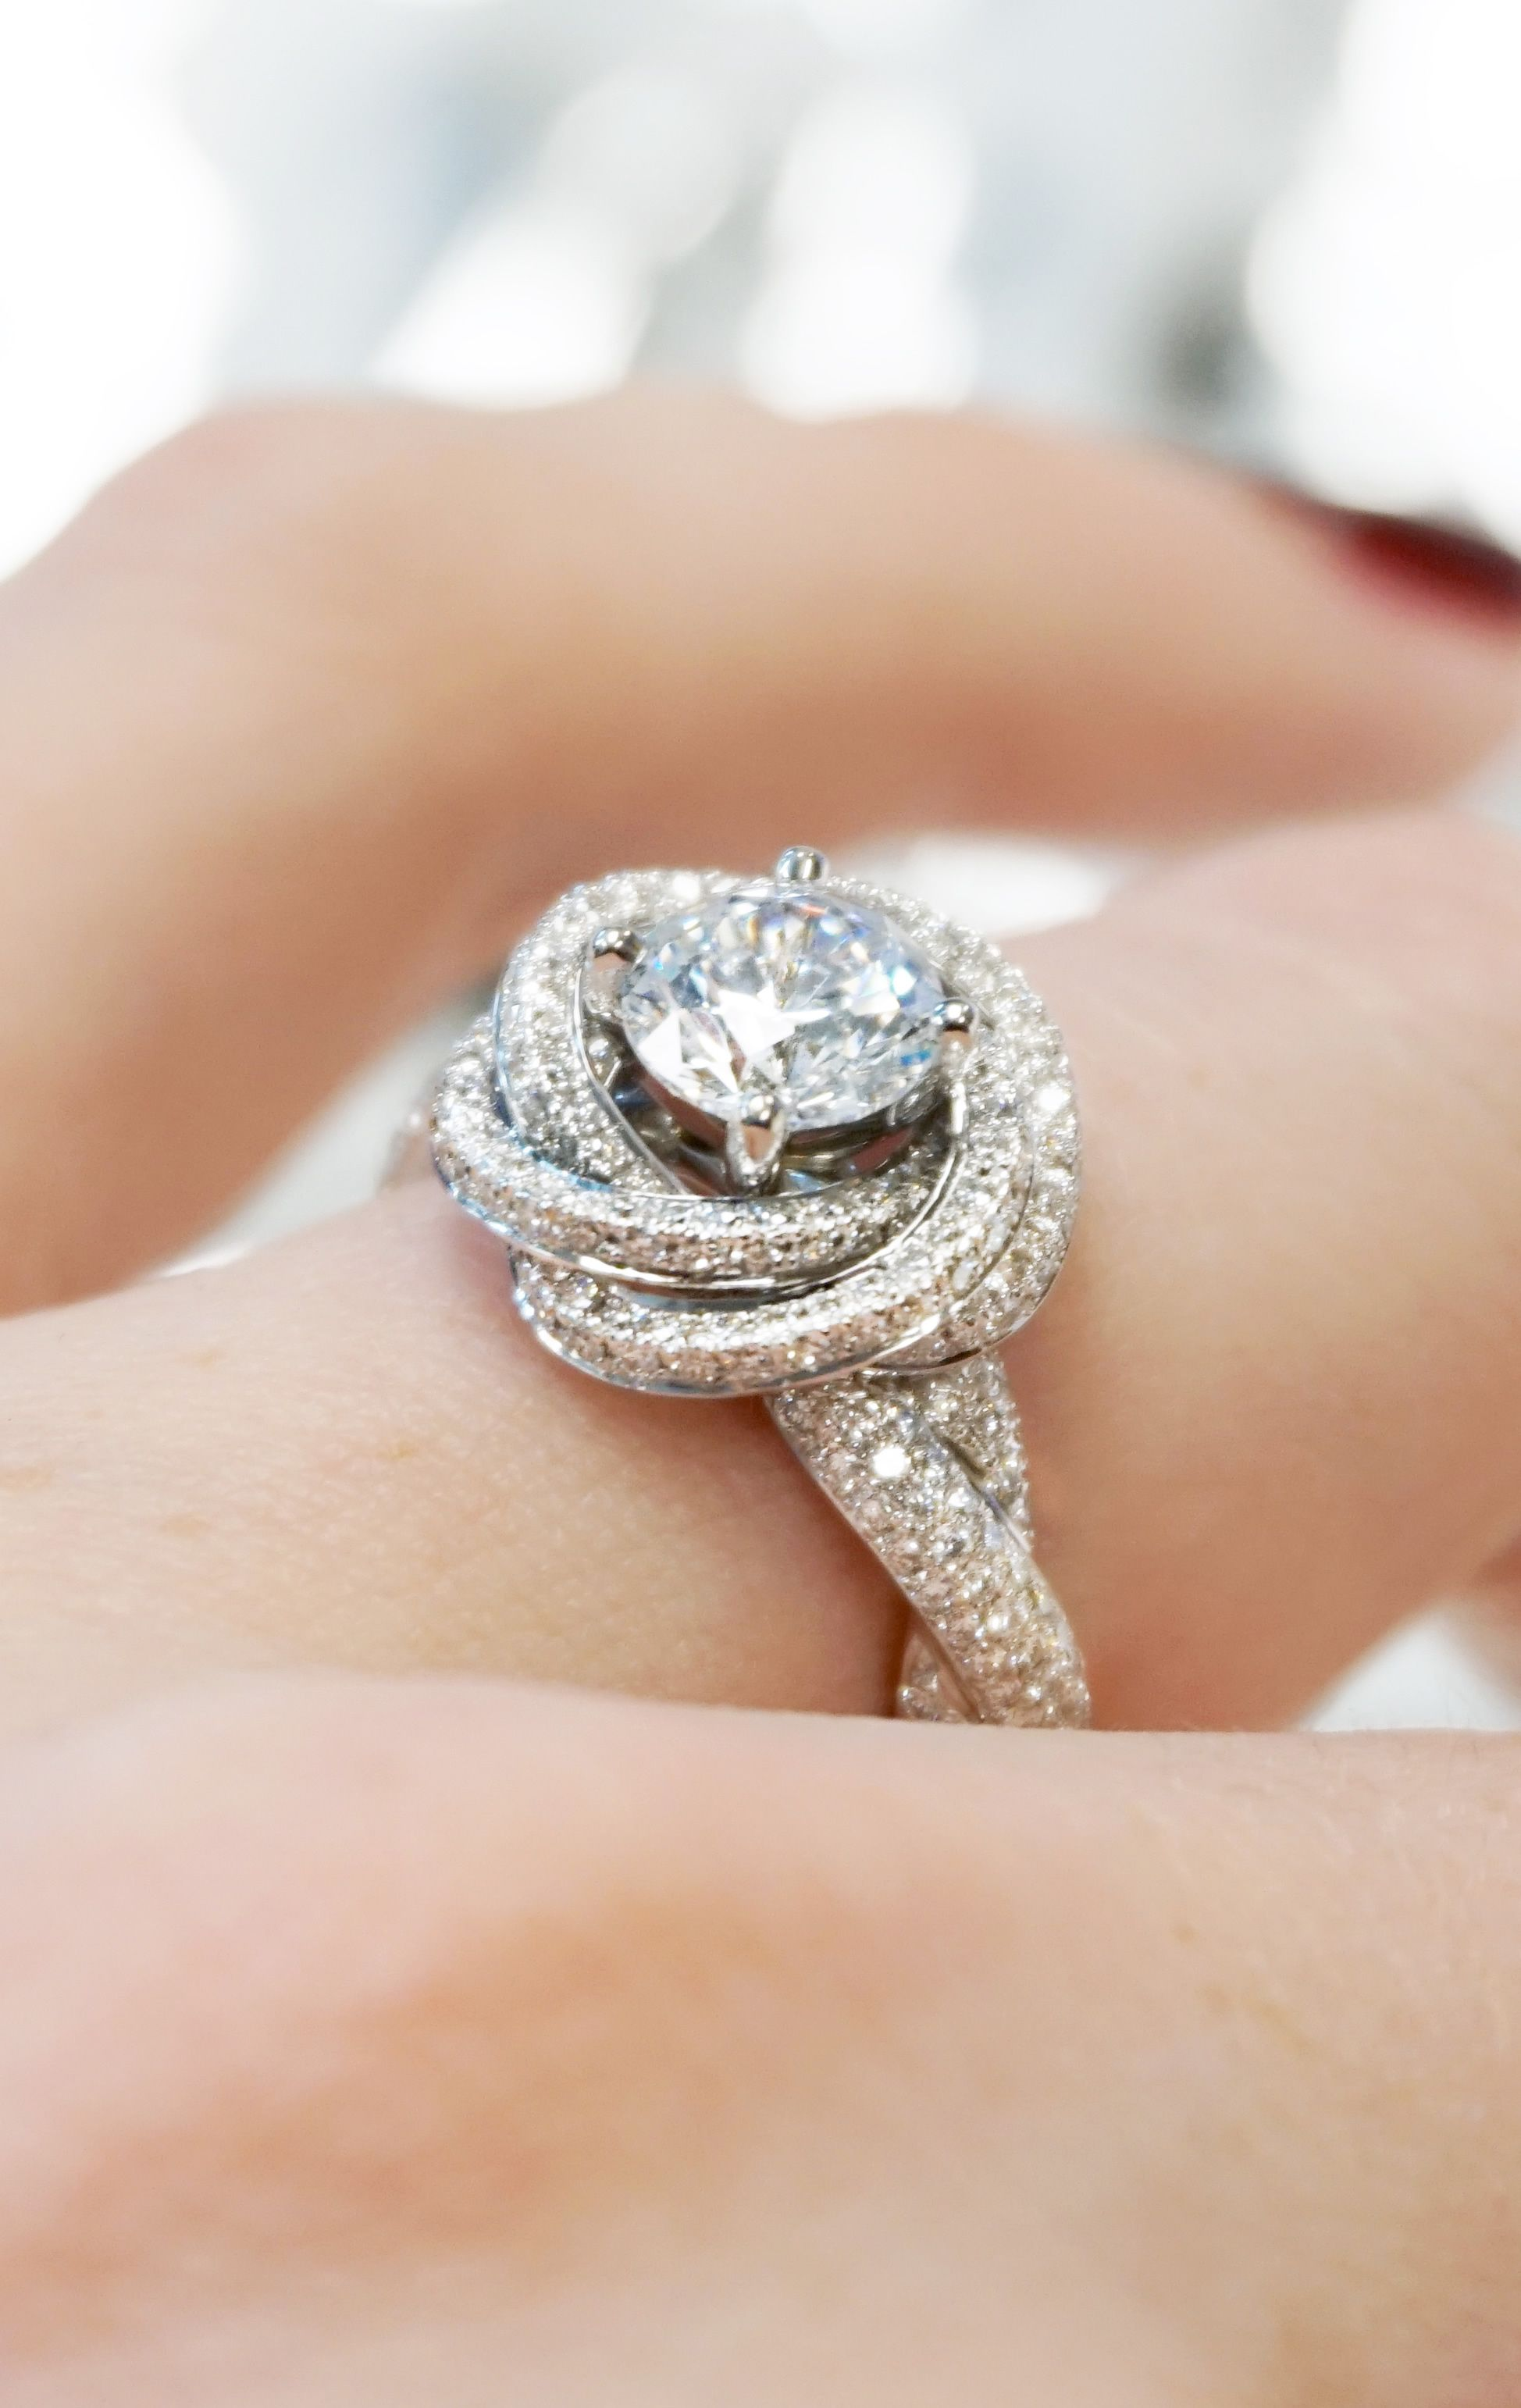 wagner for jewelers images ring com lovely wedding engagement of rings bridal matvuk